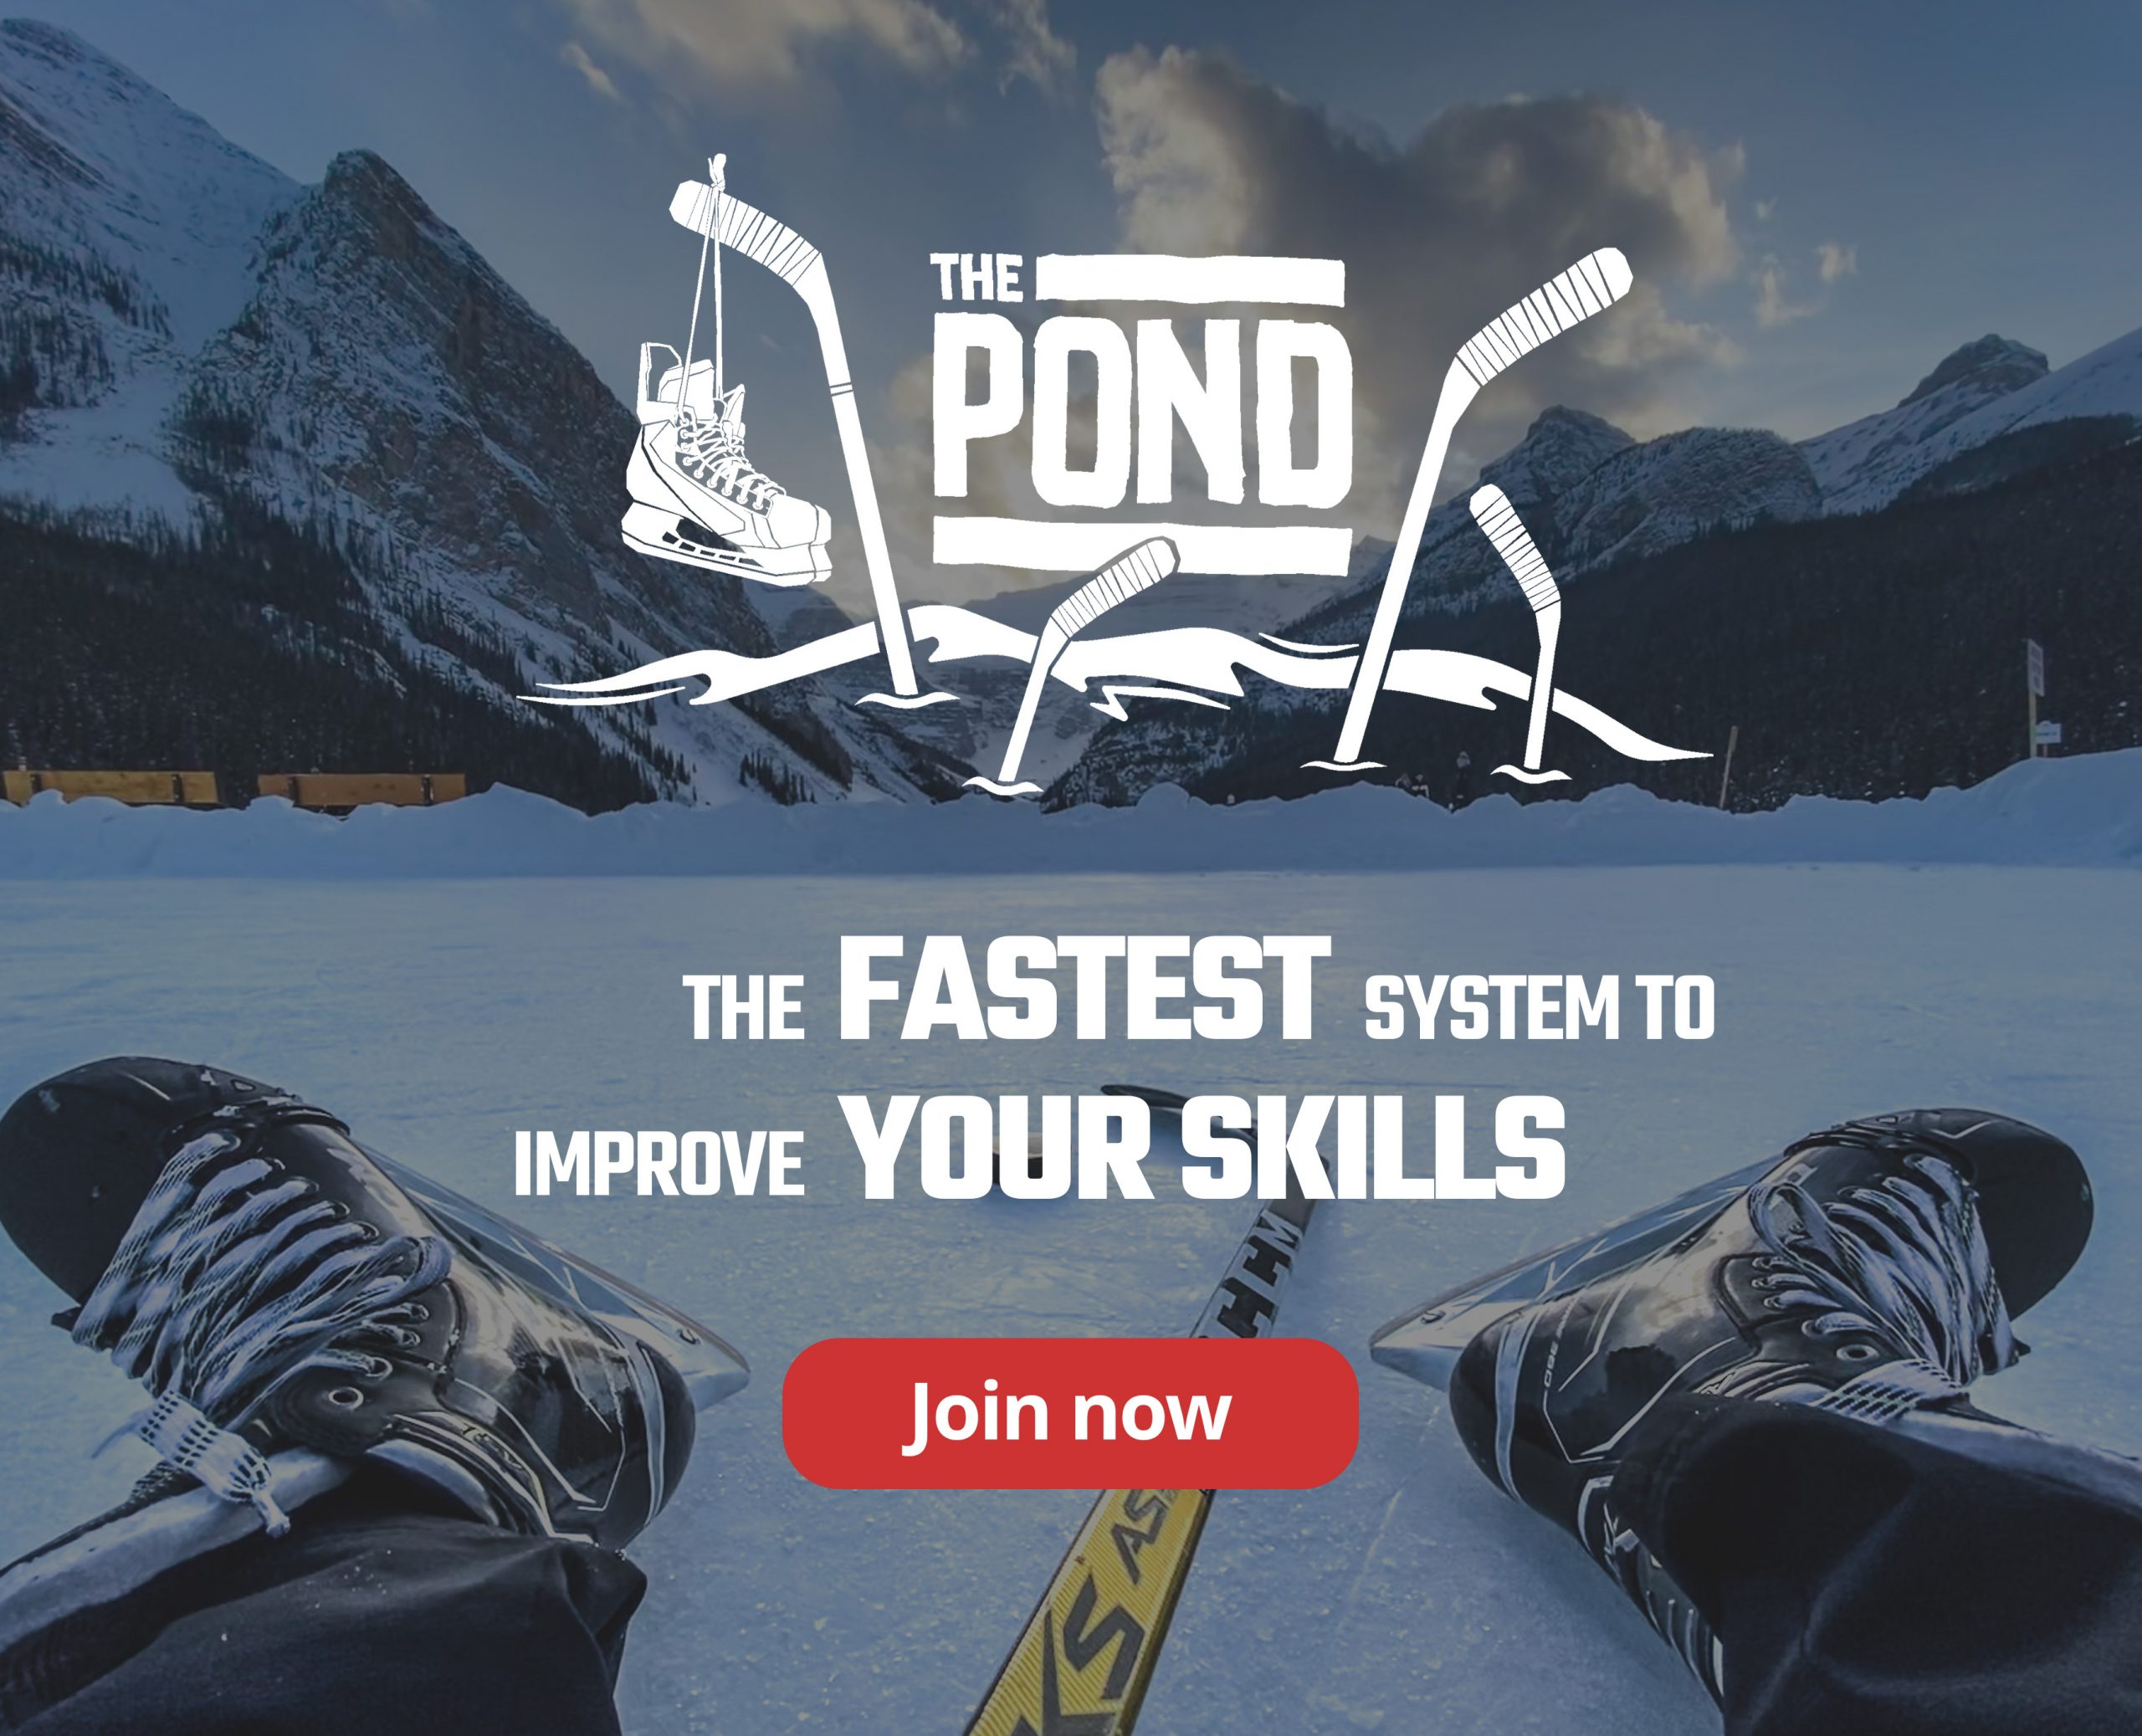 Want to improve FAST? Join The Pond now!